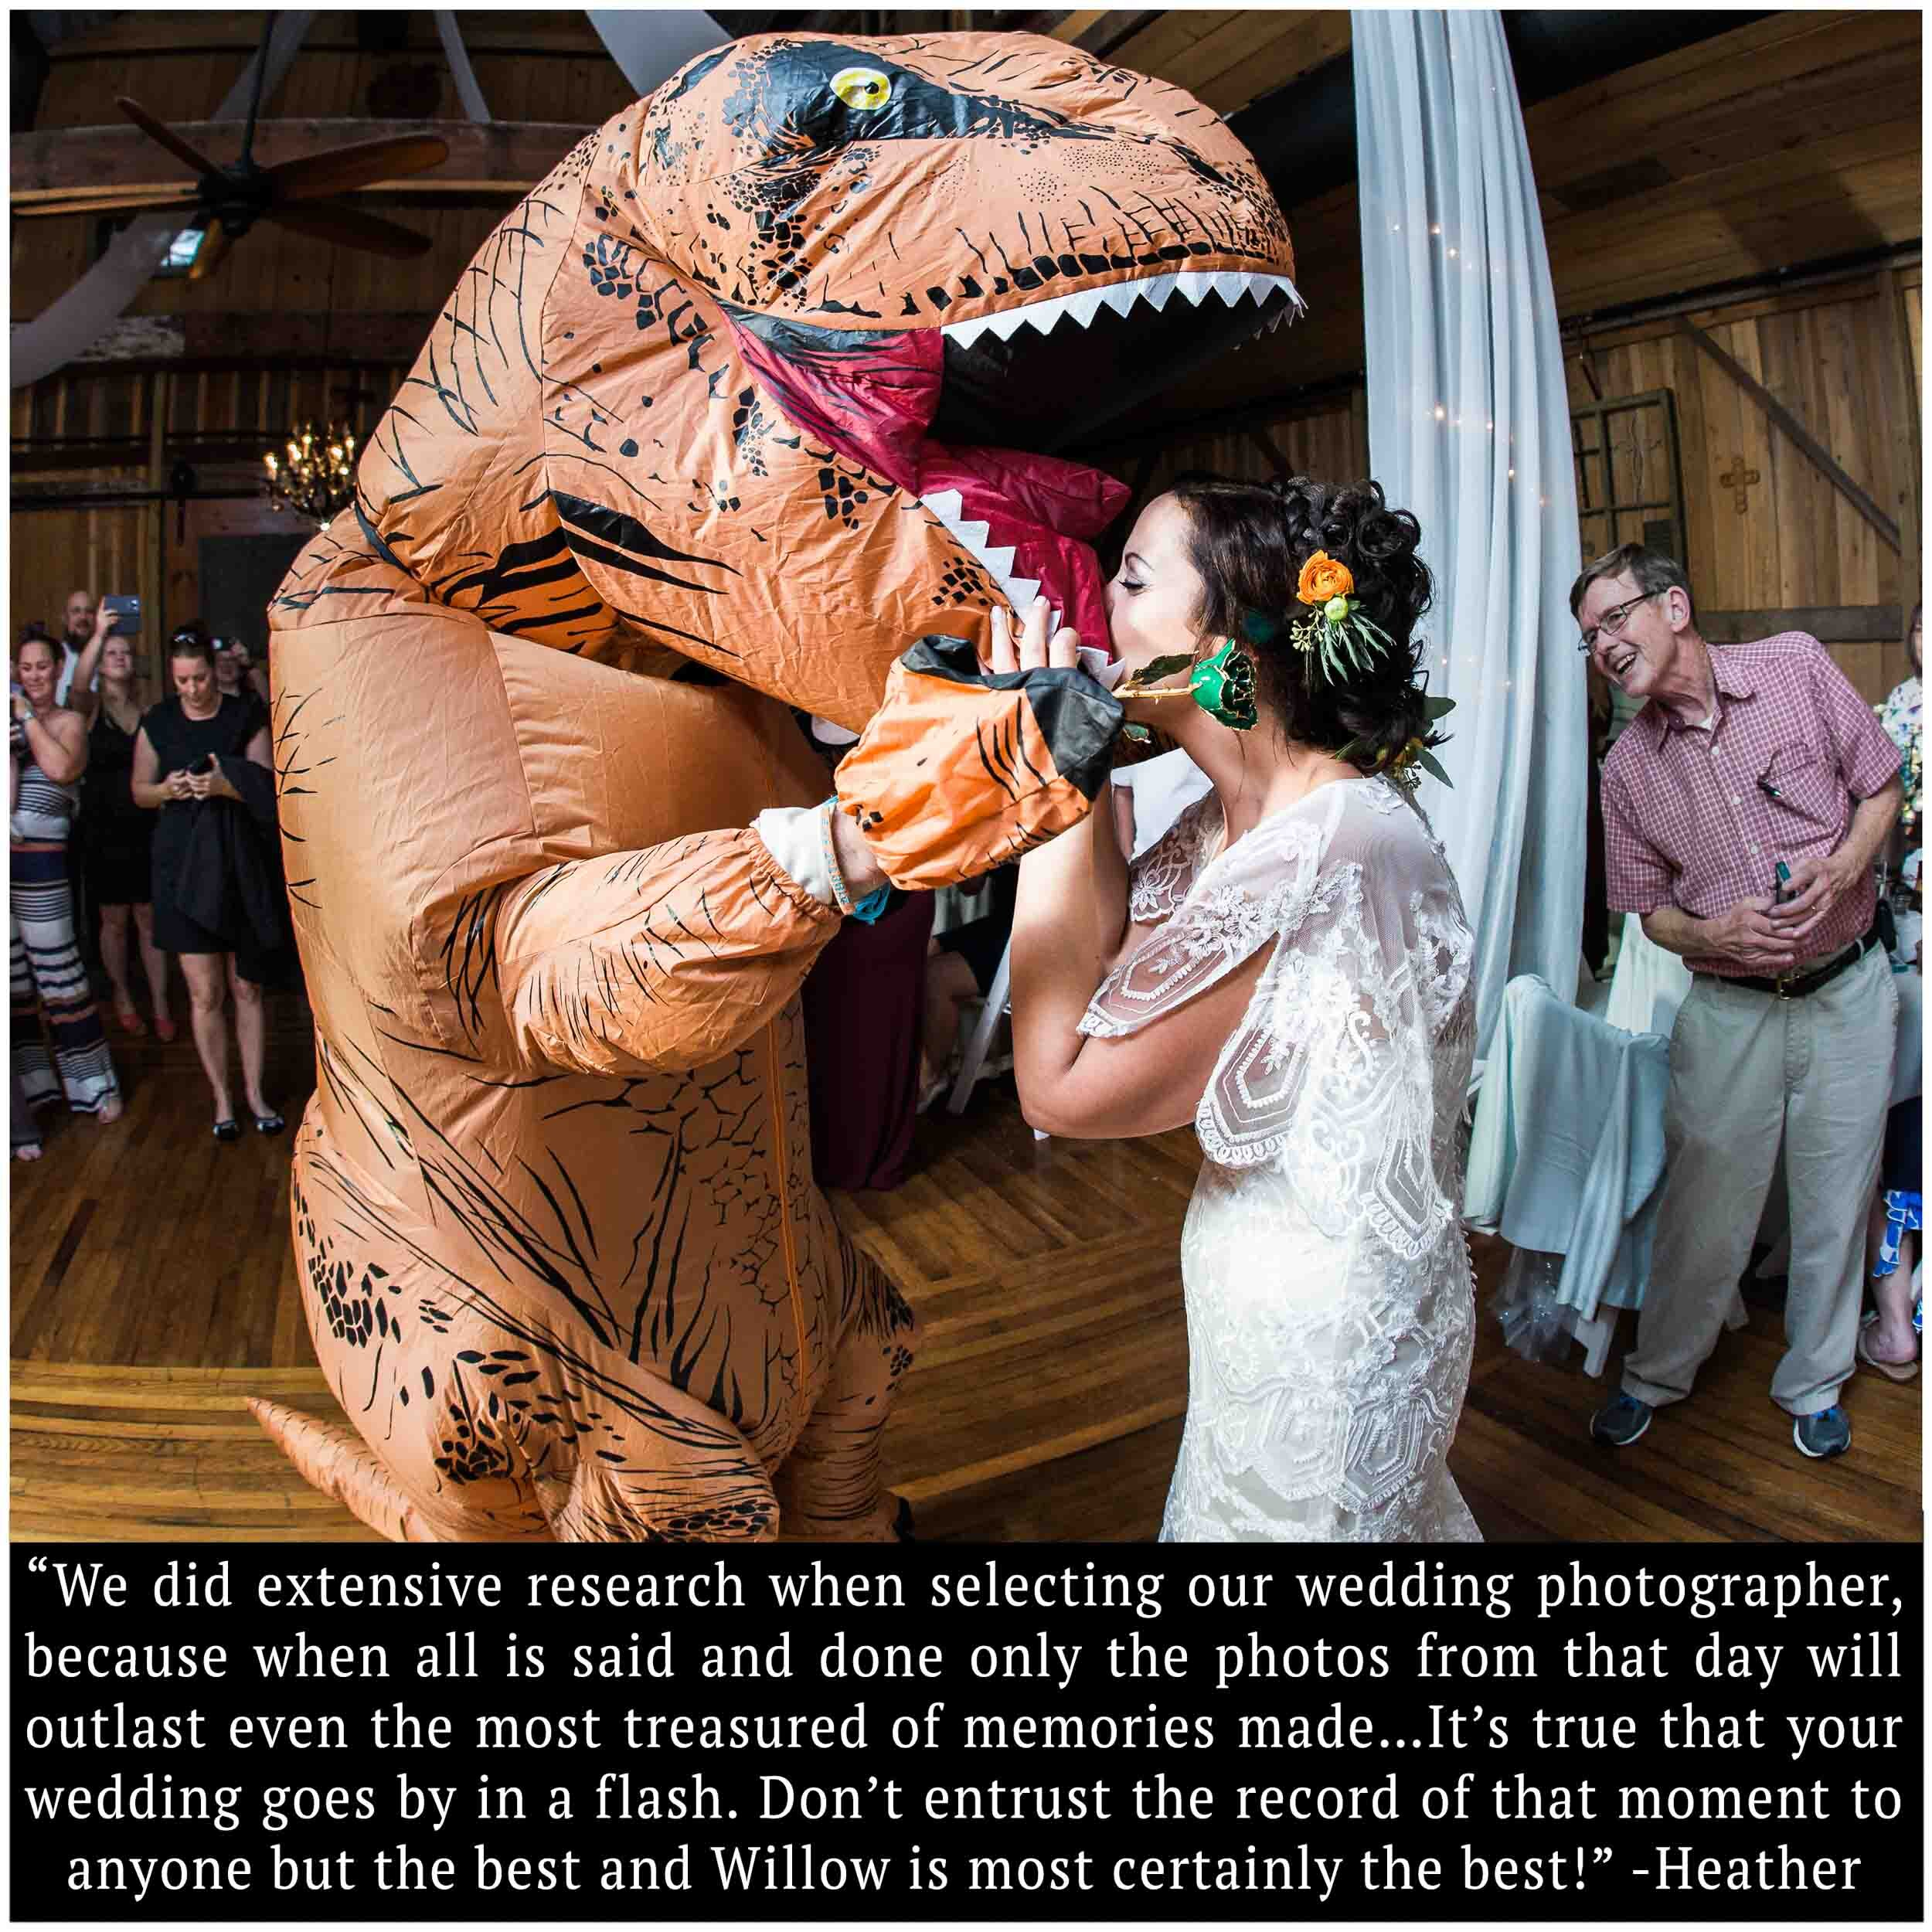 57-The-Barn-of-Pearl-River-Pearl-River-LA-New-Orleans-Wedding-Reception-Photo-Willows-World-Photo.jpg